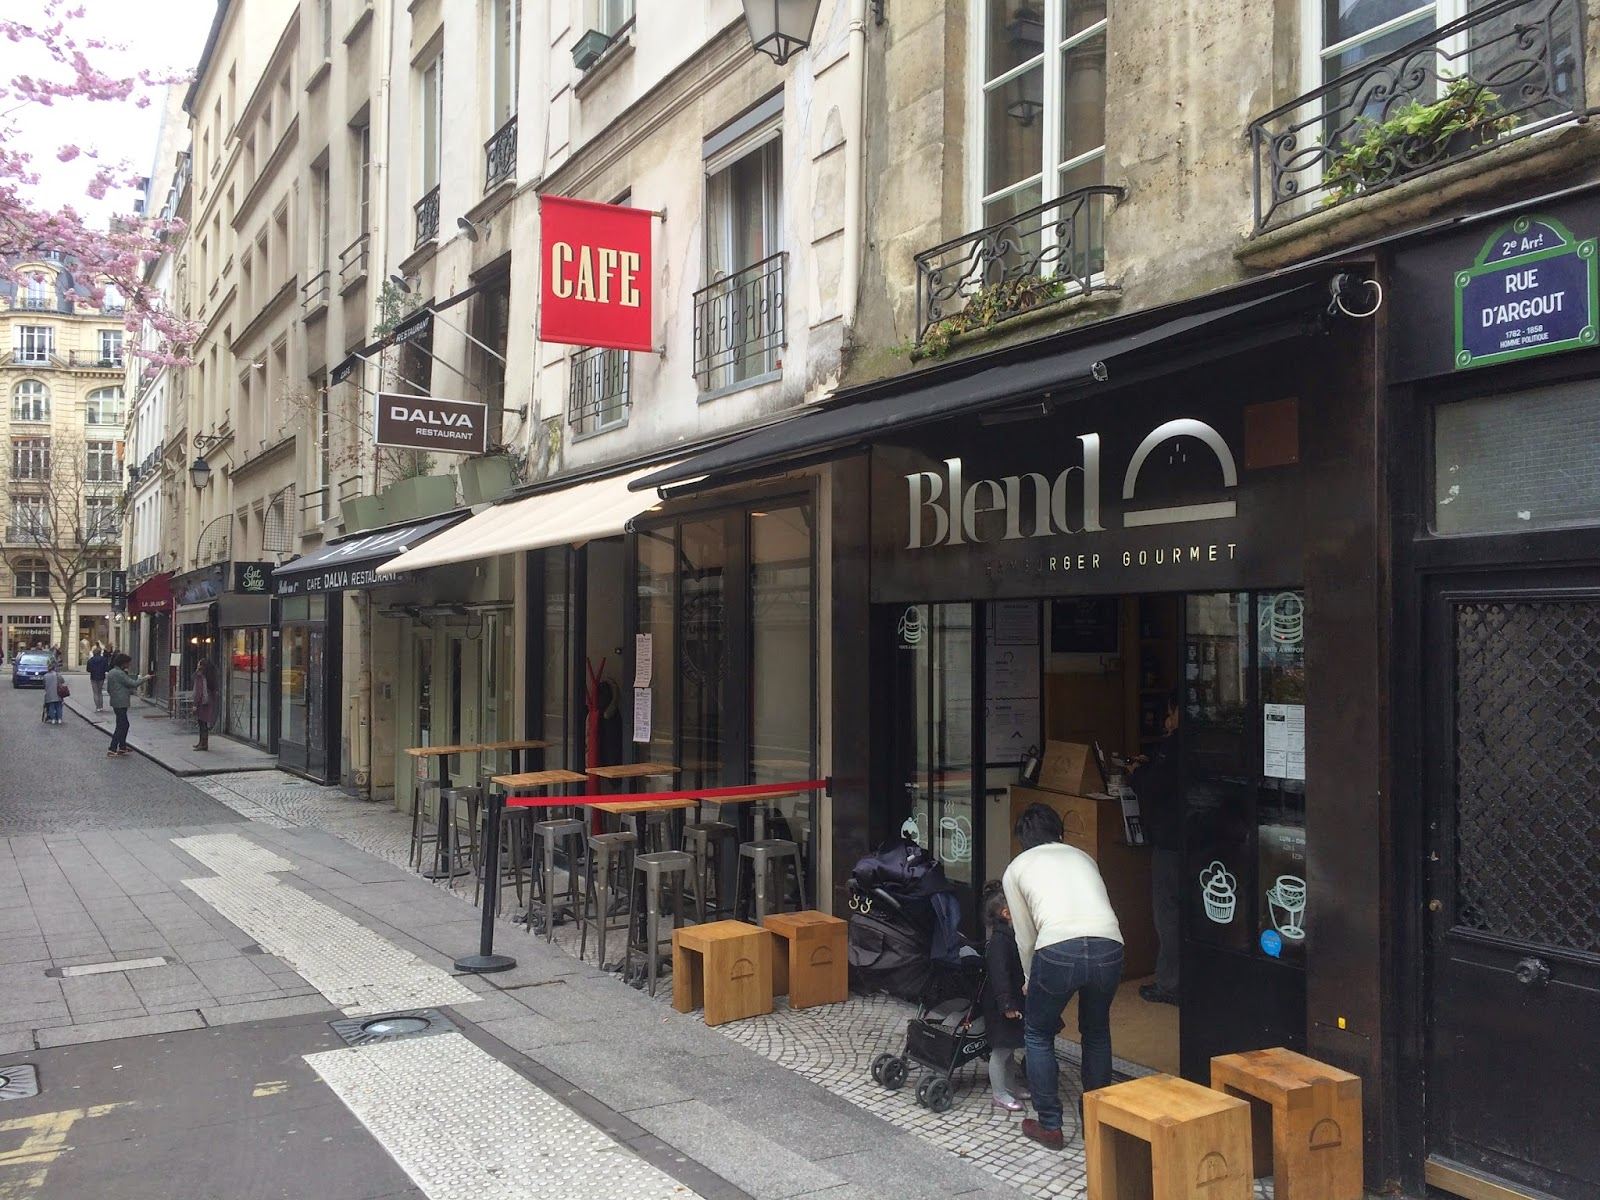 Exterior of Blend, rue d'Argout, Paris